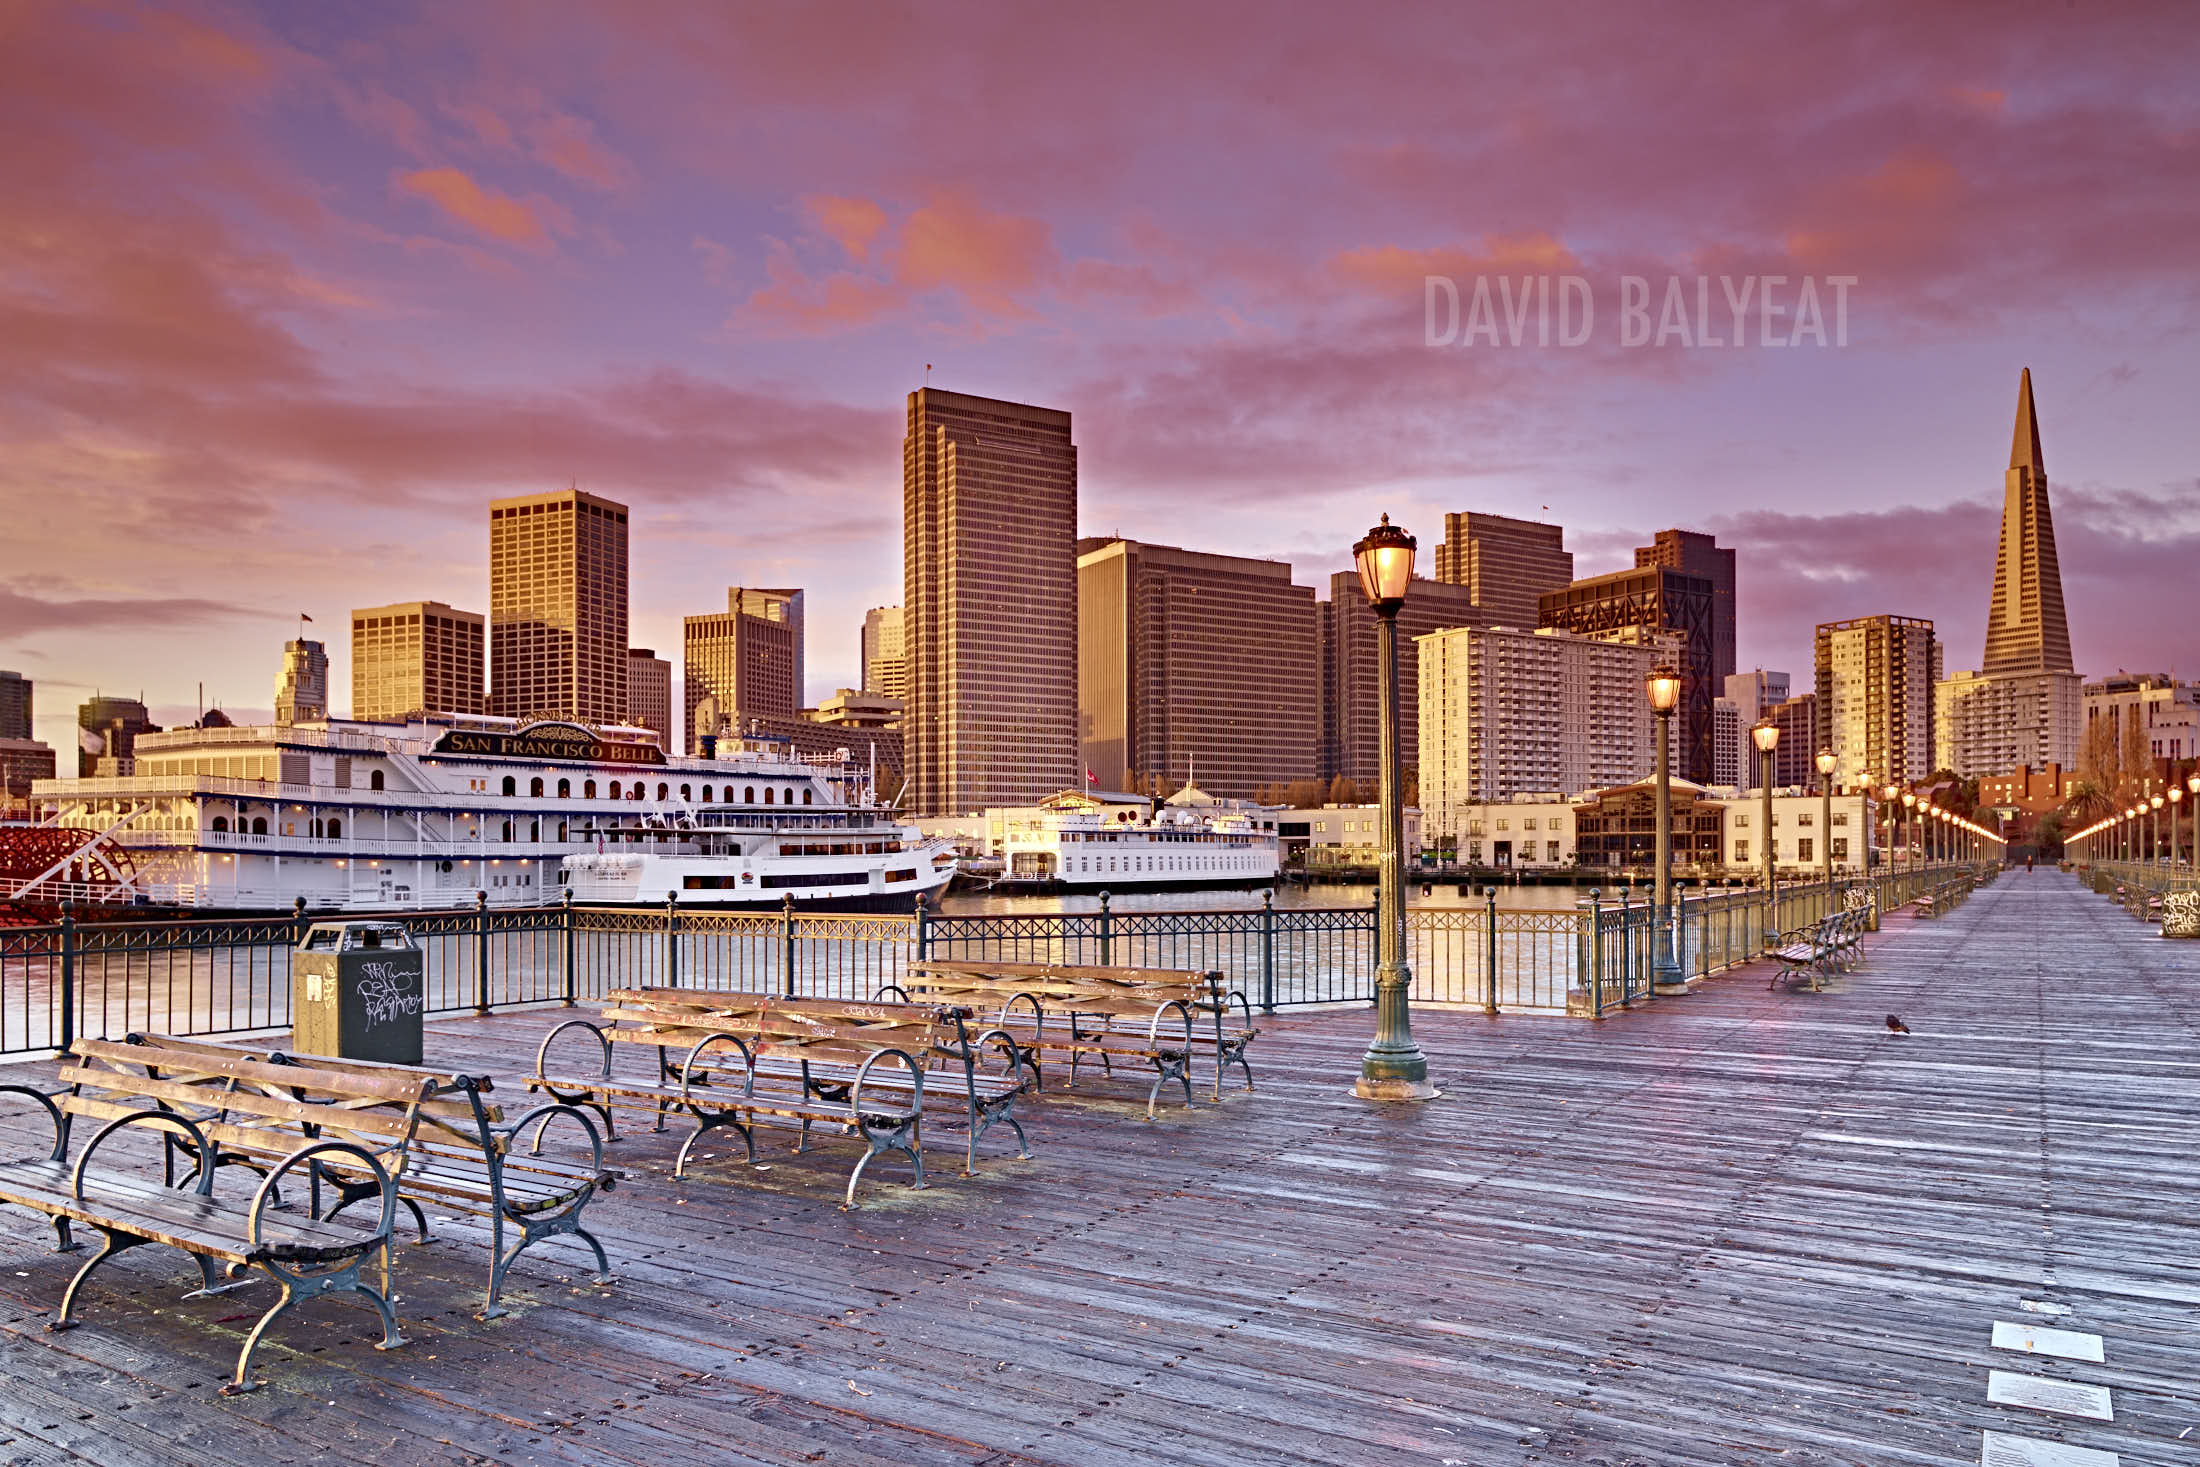 City of Gold San Francisco Embarcadero Pier #7 cityscape photography